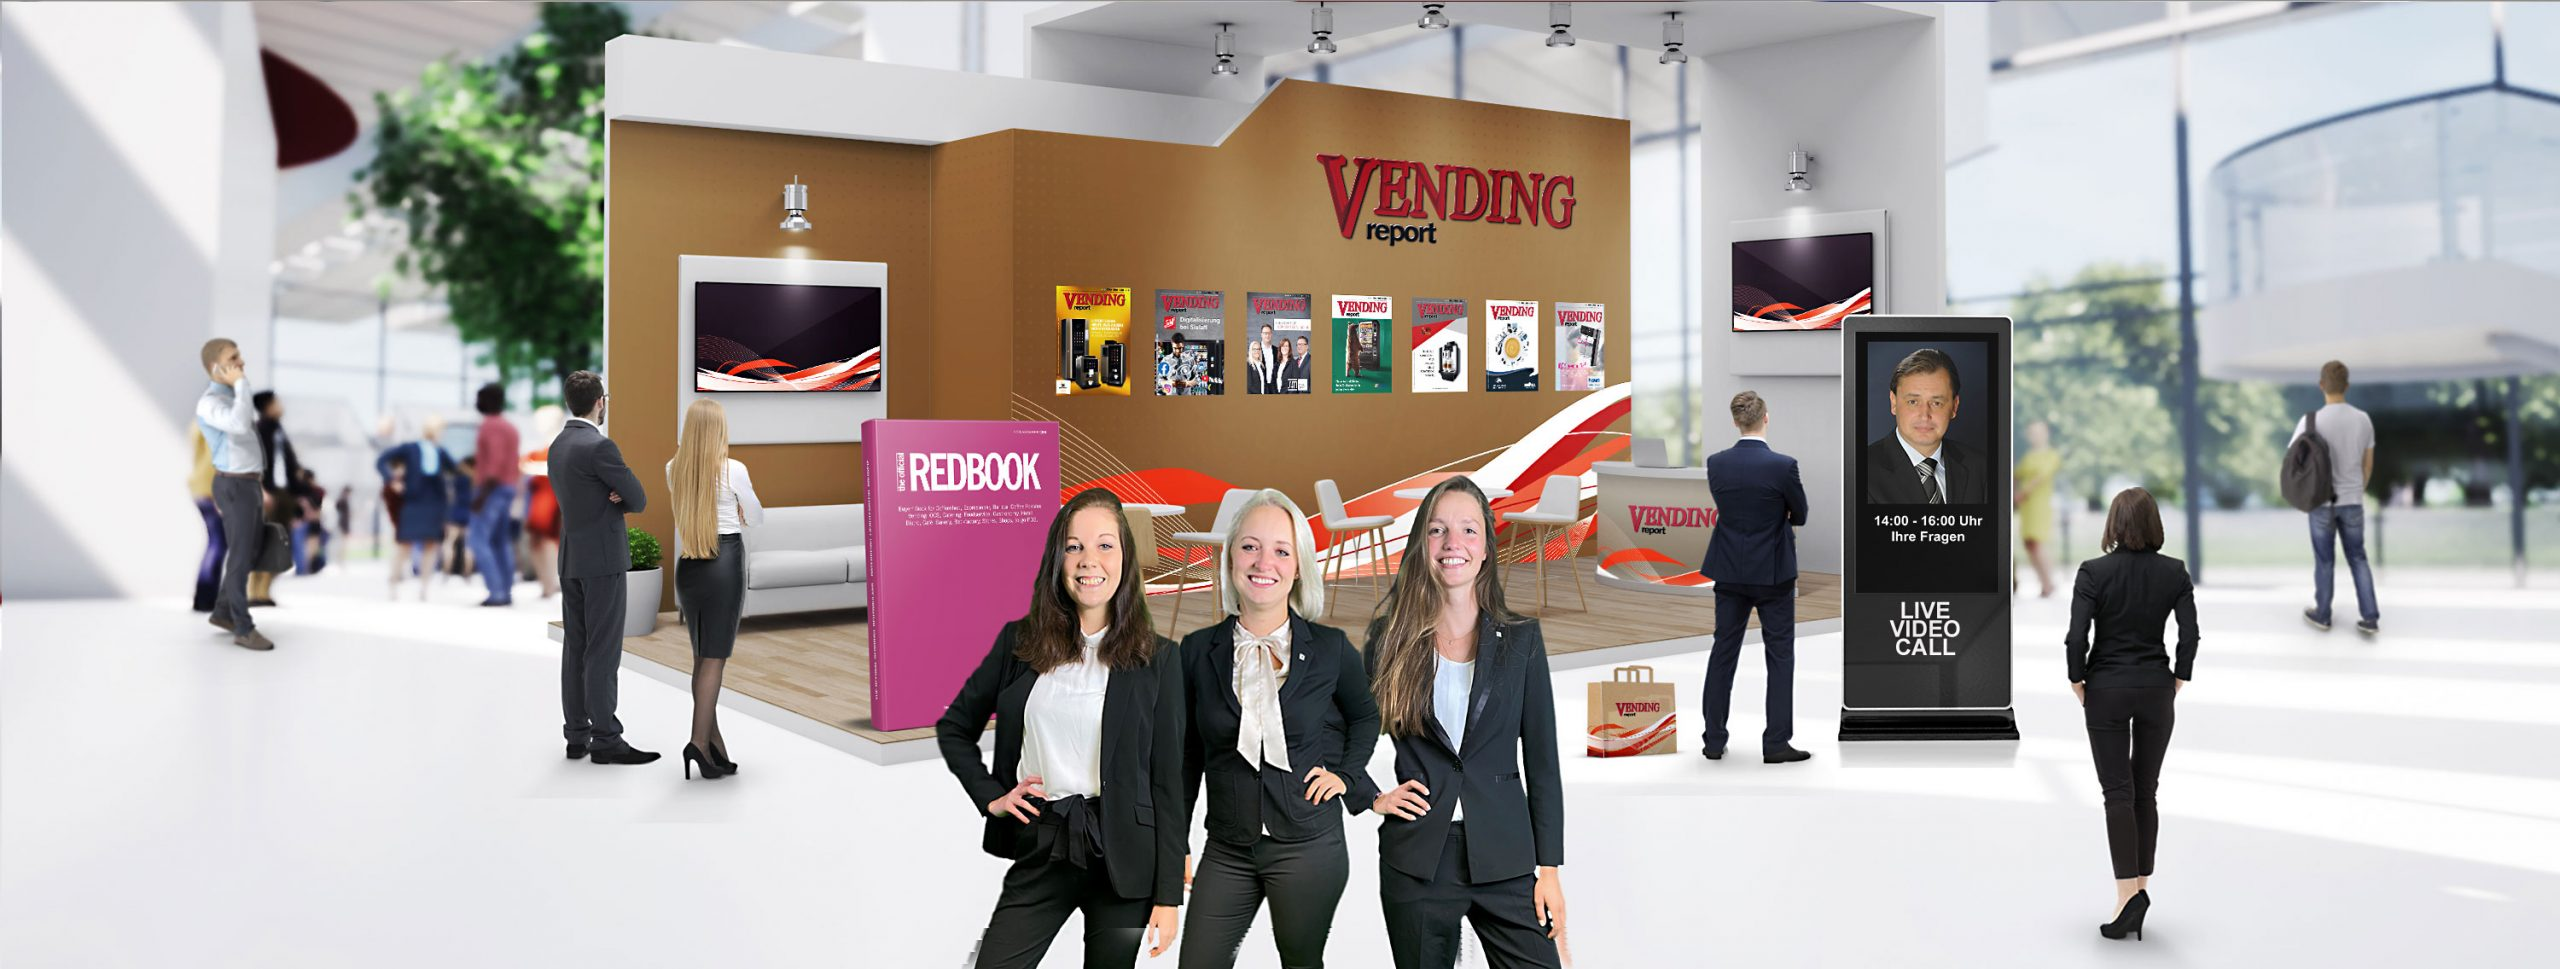 Vending Report Vendtra Vending Trade Festival Deutschland